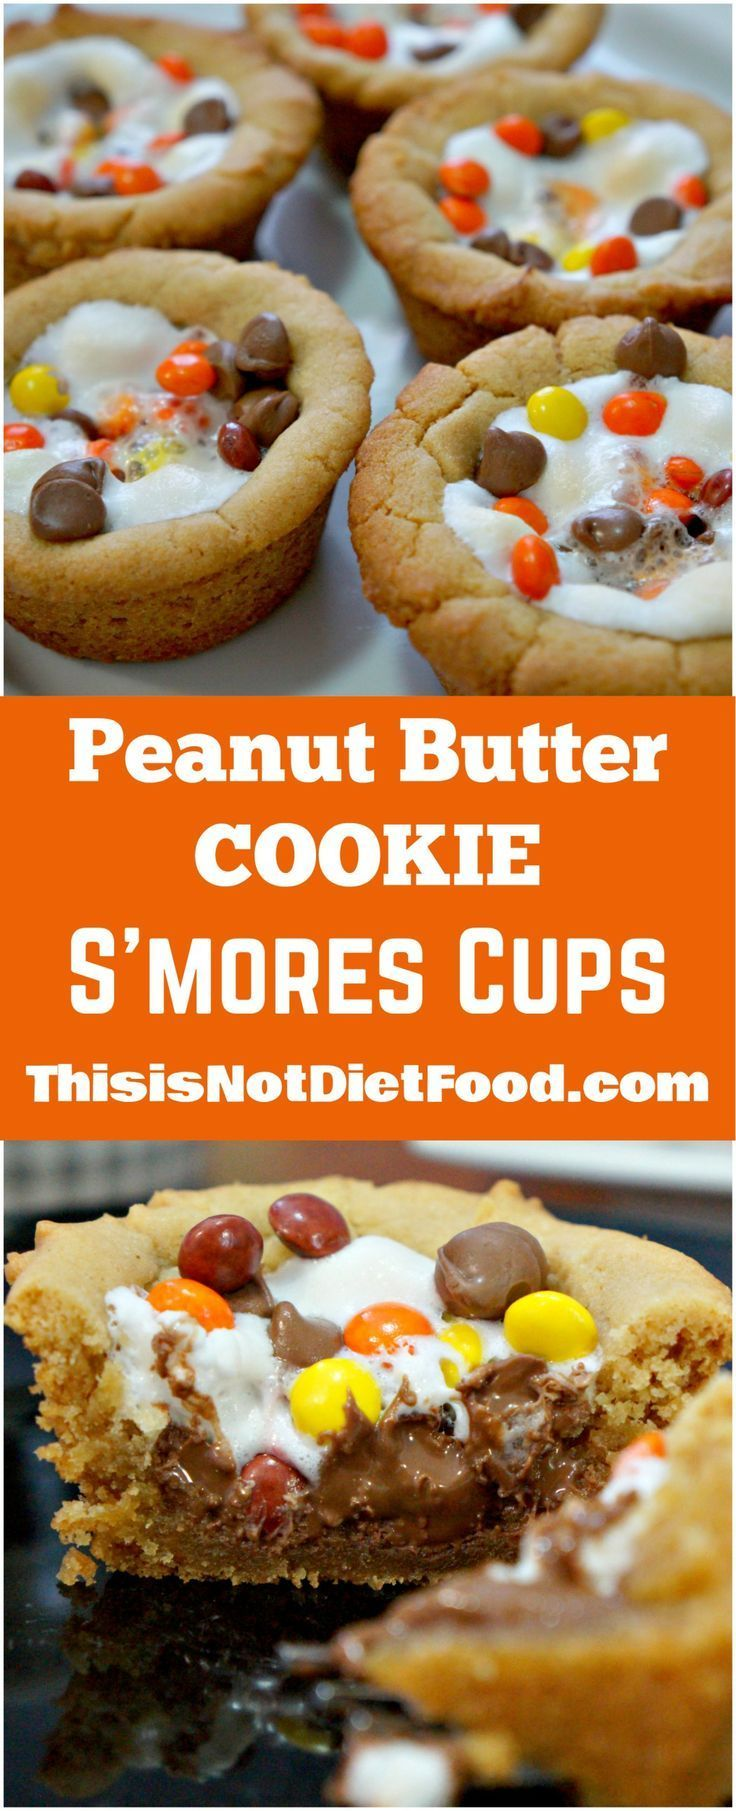 Peanut Butter Cookie S'Mores Cups. Yummy peanut butter cookie cups filled with chocolate chips, marshmallows and mini Reese's Pieces. Easy dessert recipe.